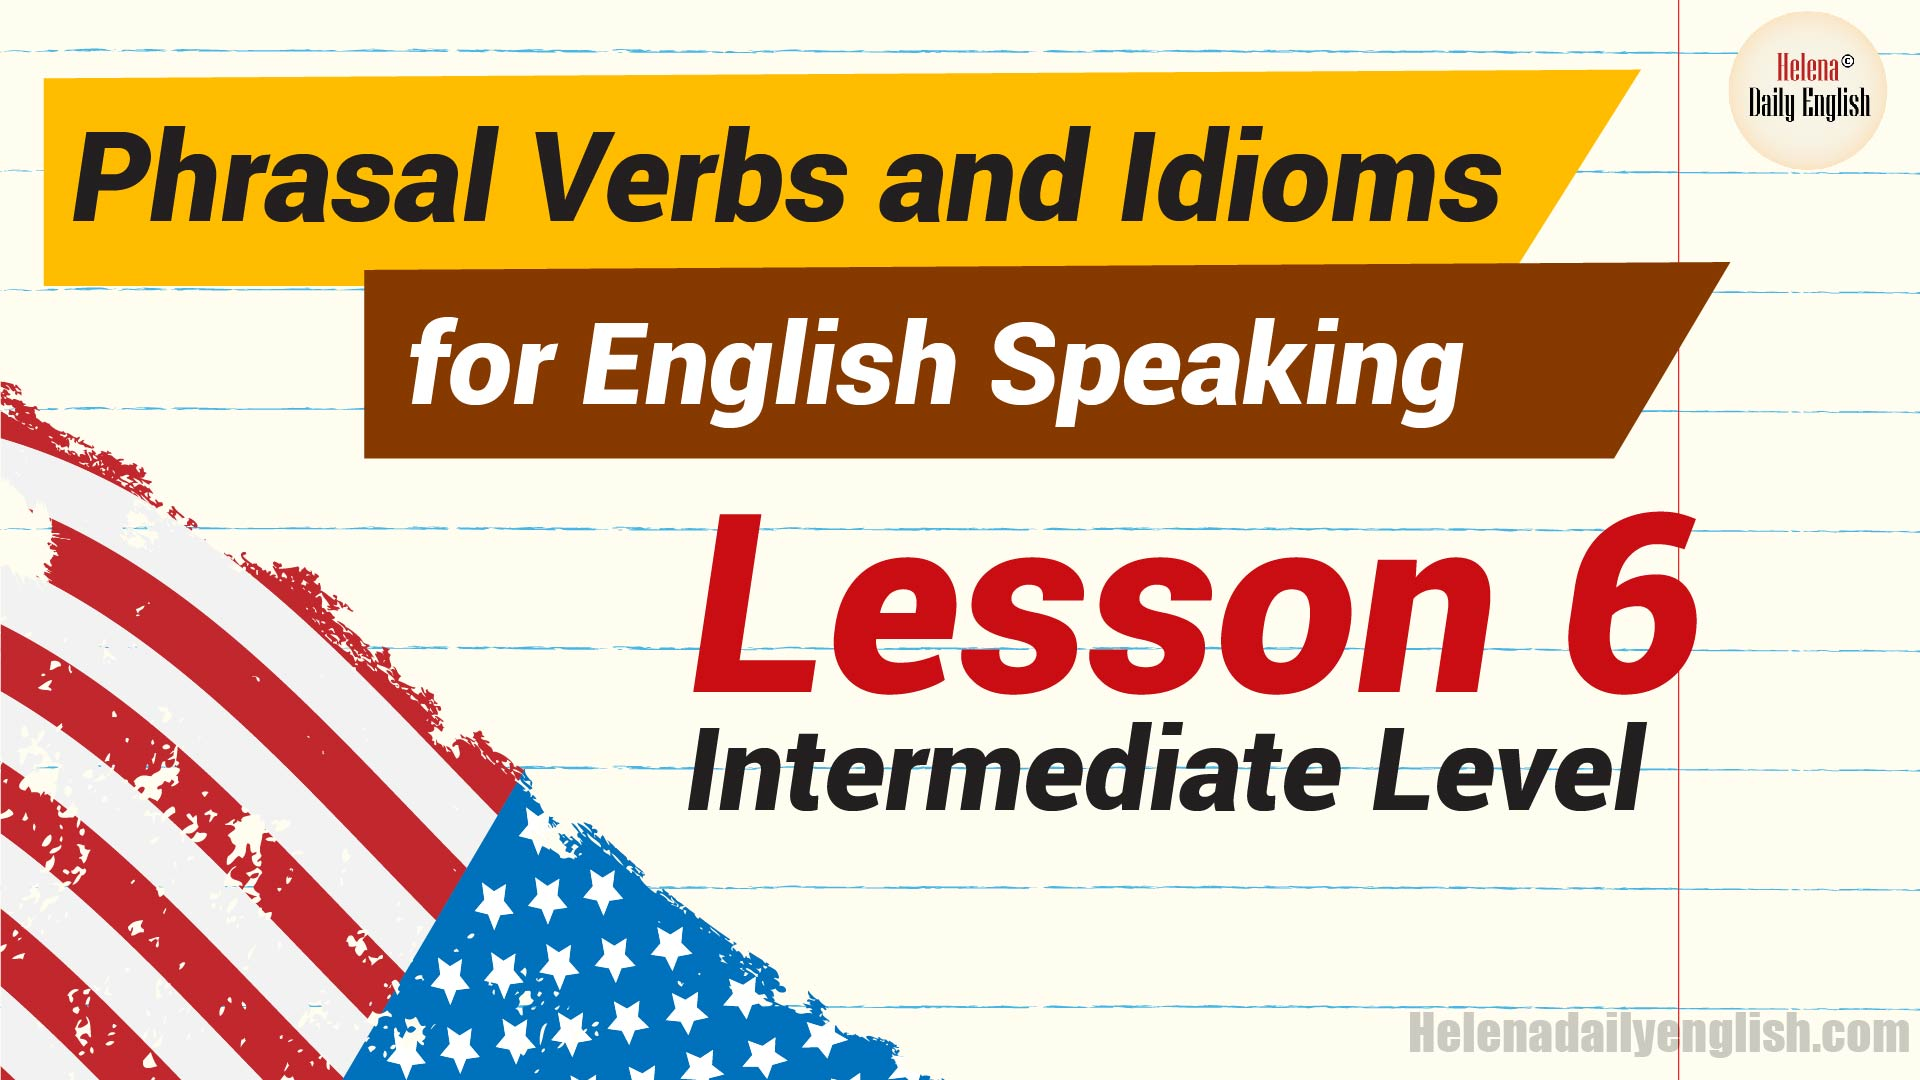 12 English Phrasal Verbs and Idioms for Learning